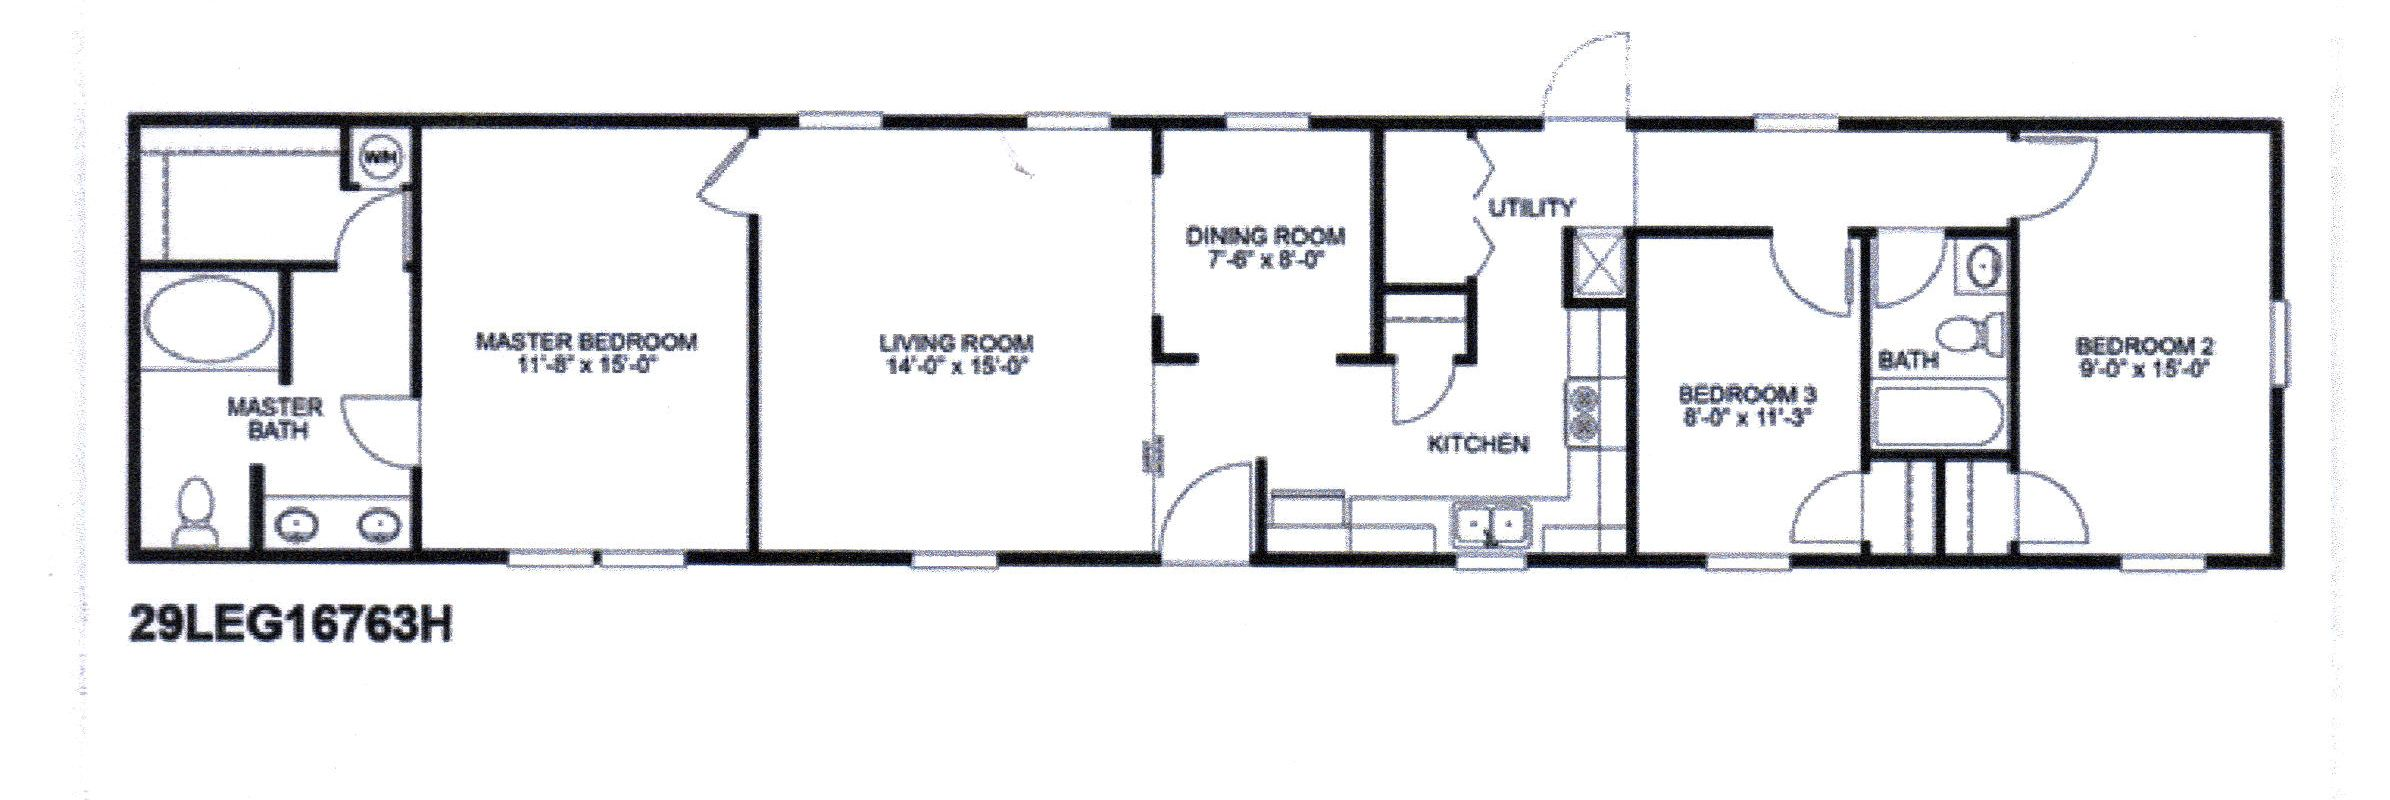 The Legend Floor Plan Mobile Home Floor Plans Floor Plans House Floor Plans